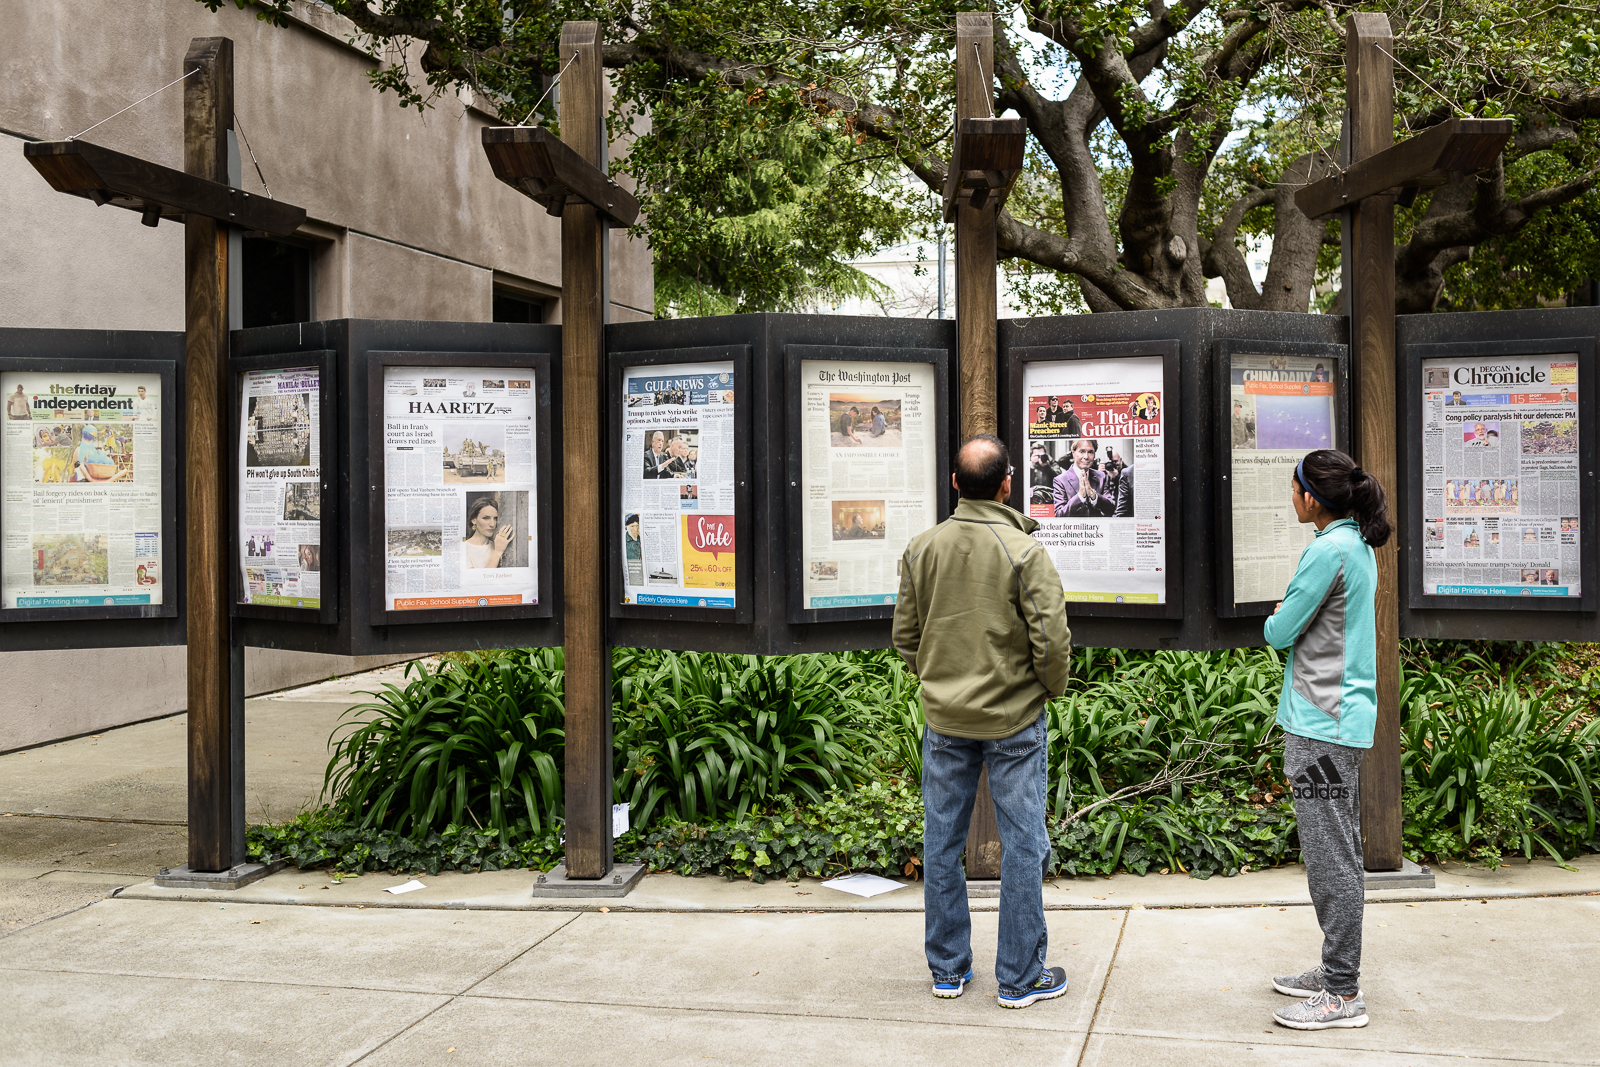 Newspaper front pages from around the world, displayed on the Berkeley Campus